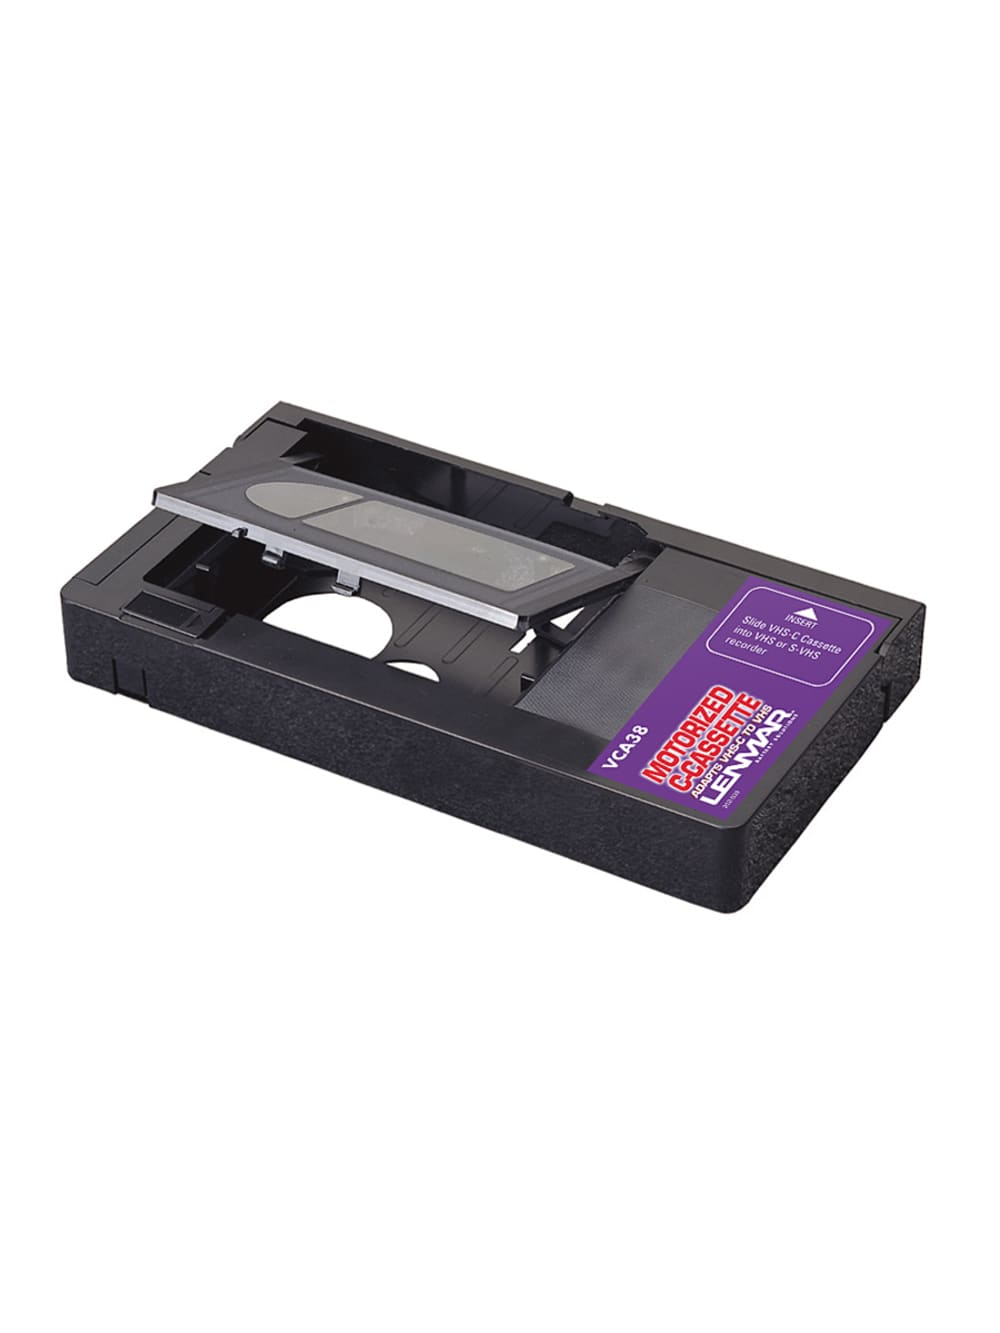 Digital Concepts Motorized Universal VHS-C To VHS Cassette Adapter